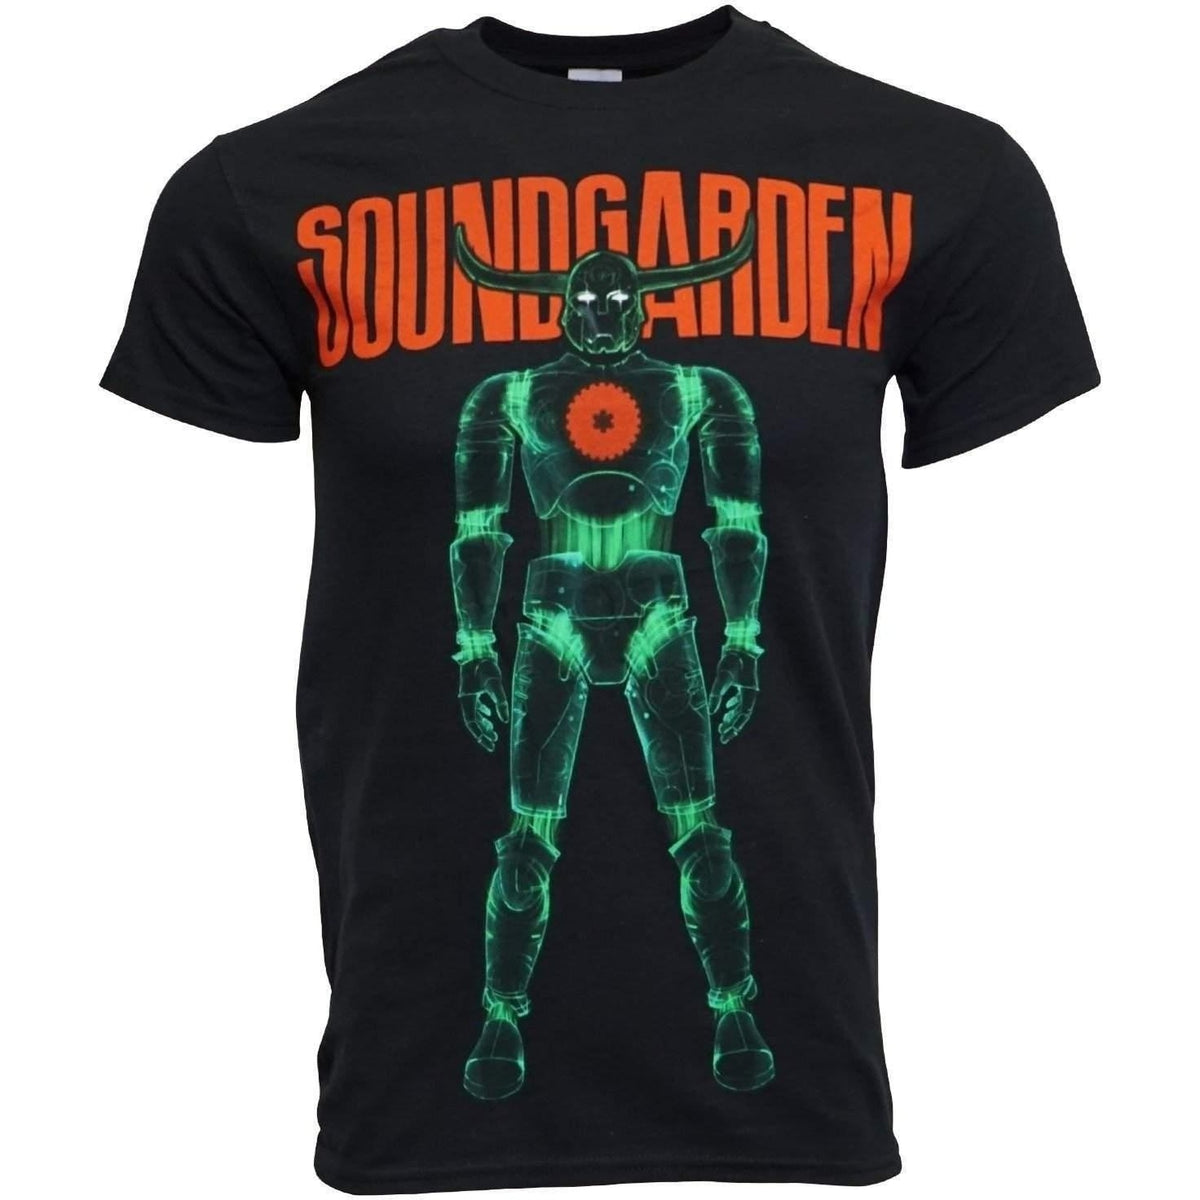 SOUND GARDEN TOUR T SHIRT